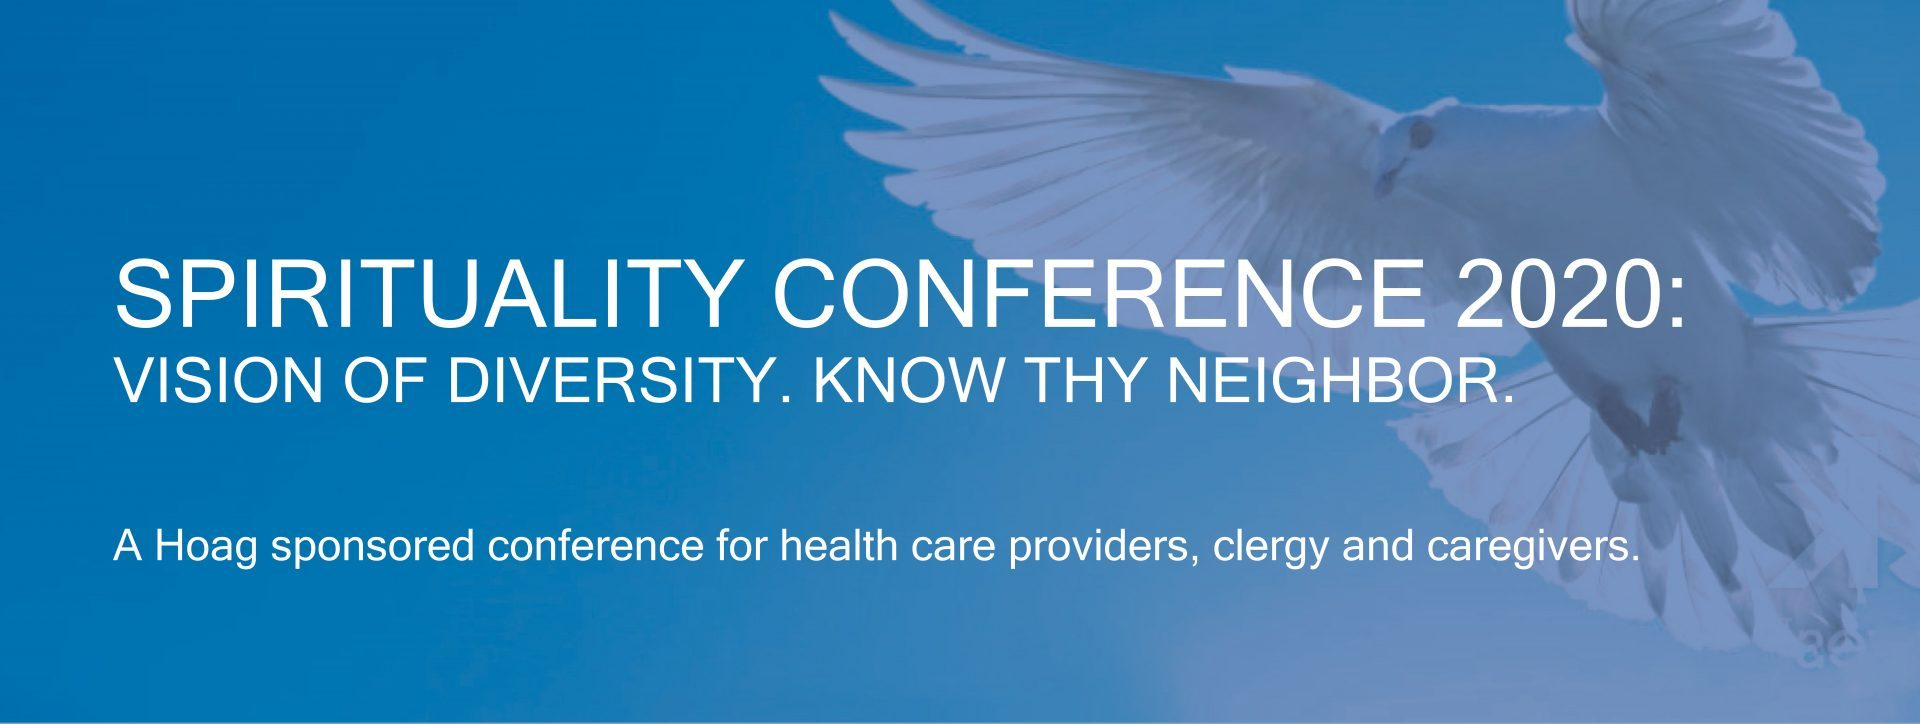 Save The Date – Hoag's 16th Annual Spirituality Conference On March 5, 2020